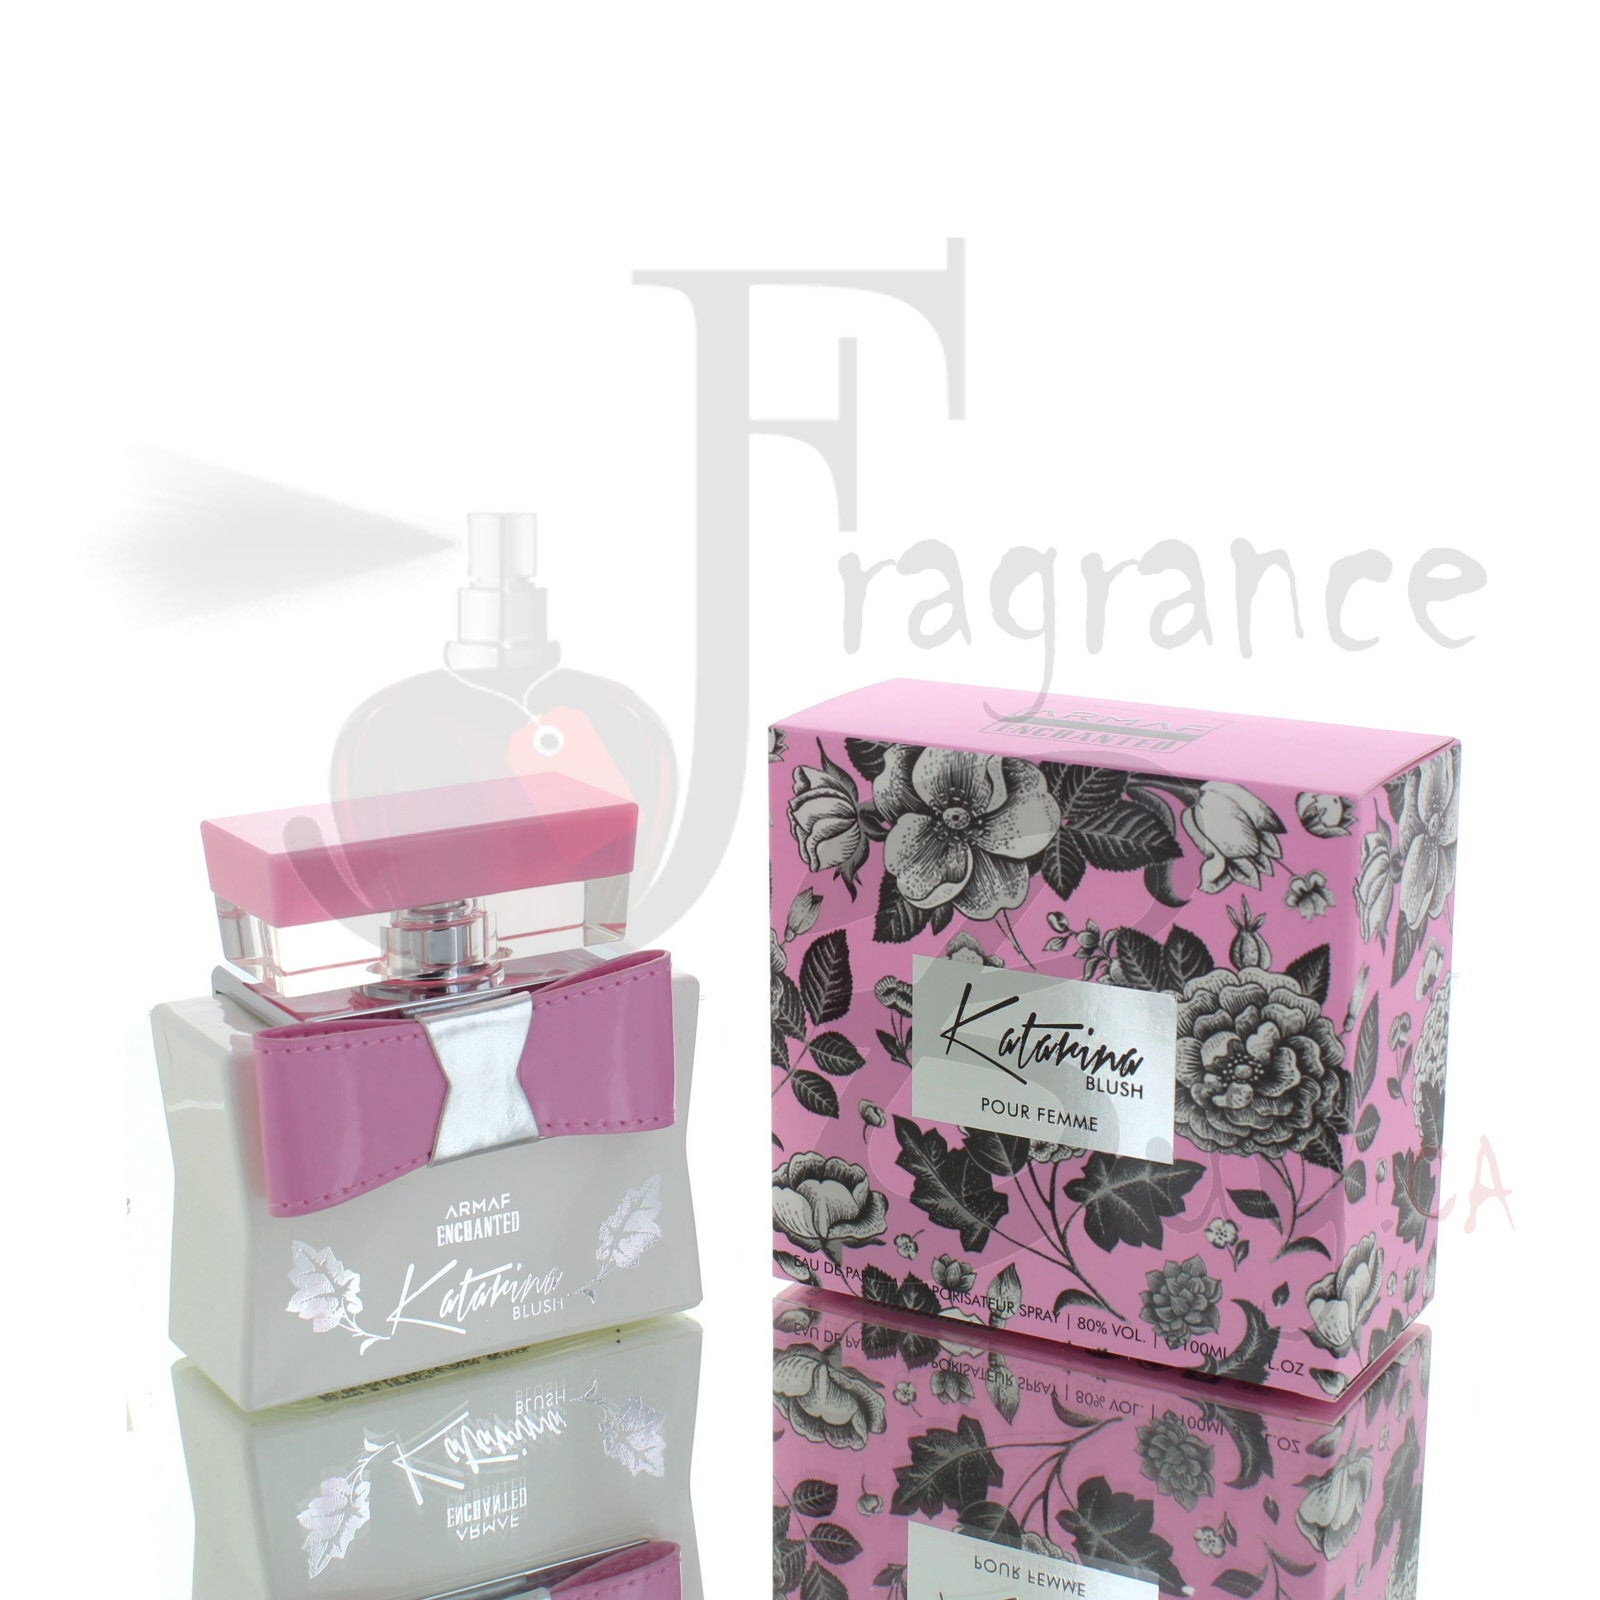 Armaf Katarina Blush For Woman